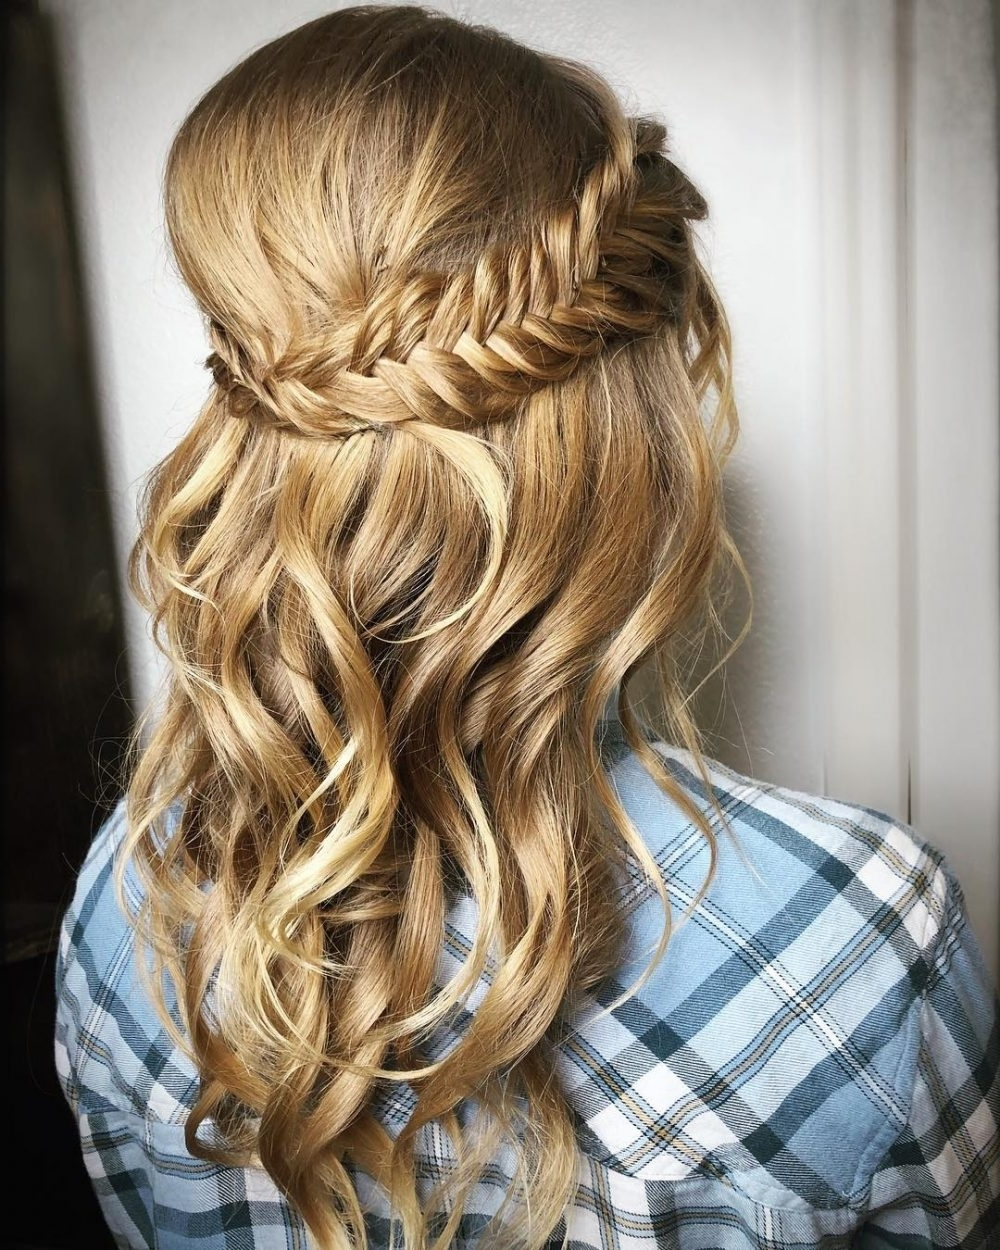 Half Up Half Down Prom Hairstyles – Pictures And How To's For Well Known Formal Half Ponytail Hairstyles (View 10 of 20)